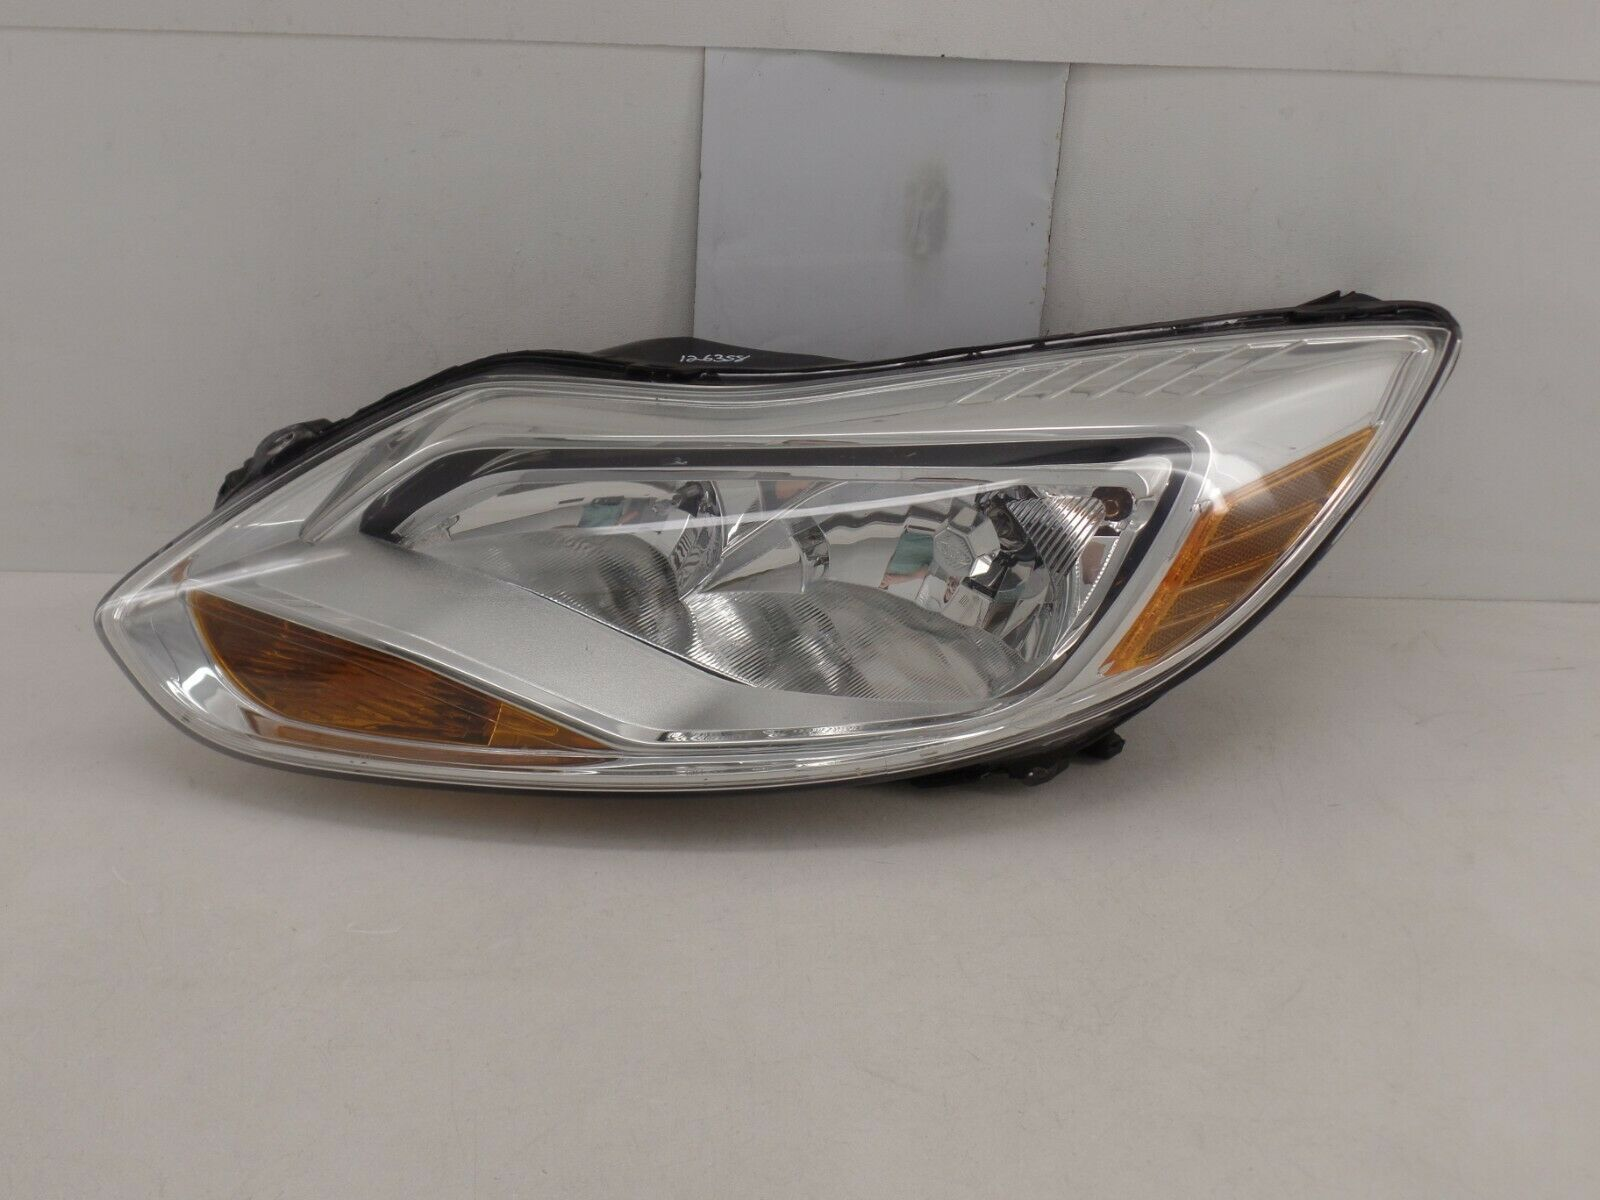 Primary image for USED OEM HEAD LIGHT FORD FOCUS 12 13 14 HEADLIGHT LAMP CHROME HEADLAMP DAMAGE LH